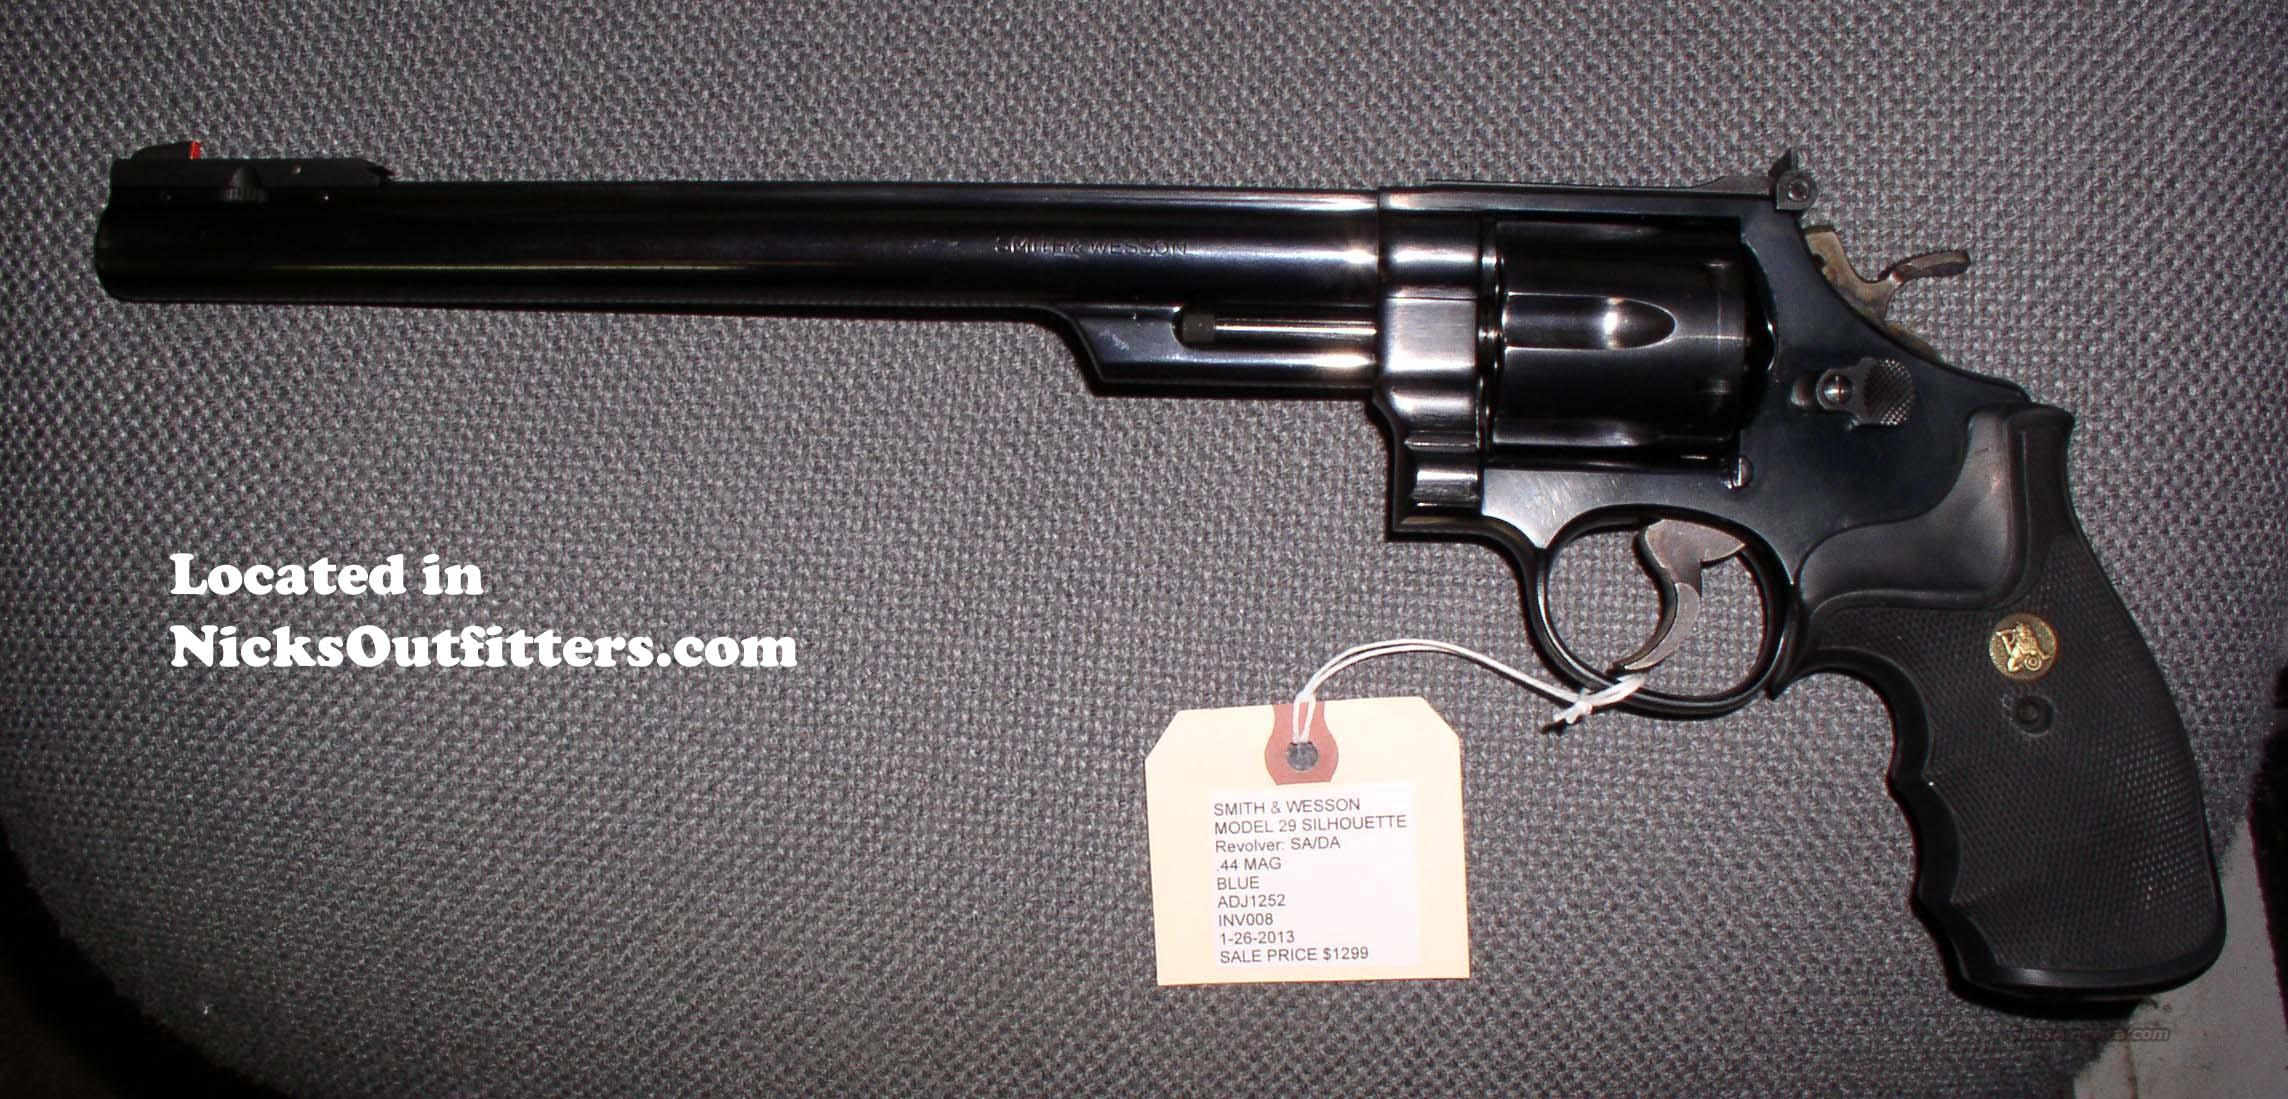 Smith & Wesson MODEL 29 SILHOUETTE  Guns > Pistols > Smith & Wesson Revolvers > Full Frame Revolver